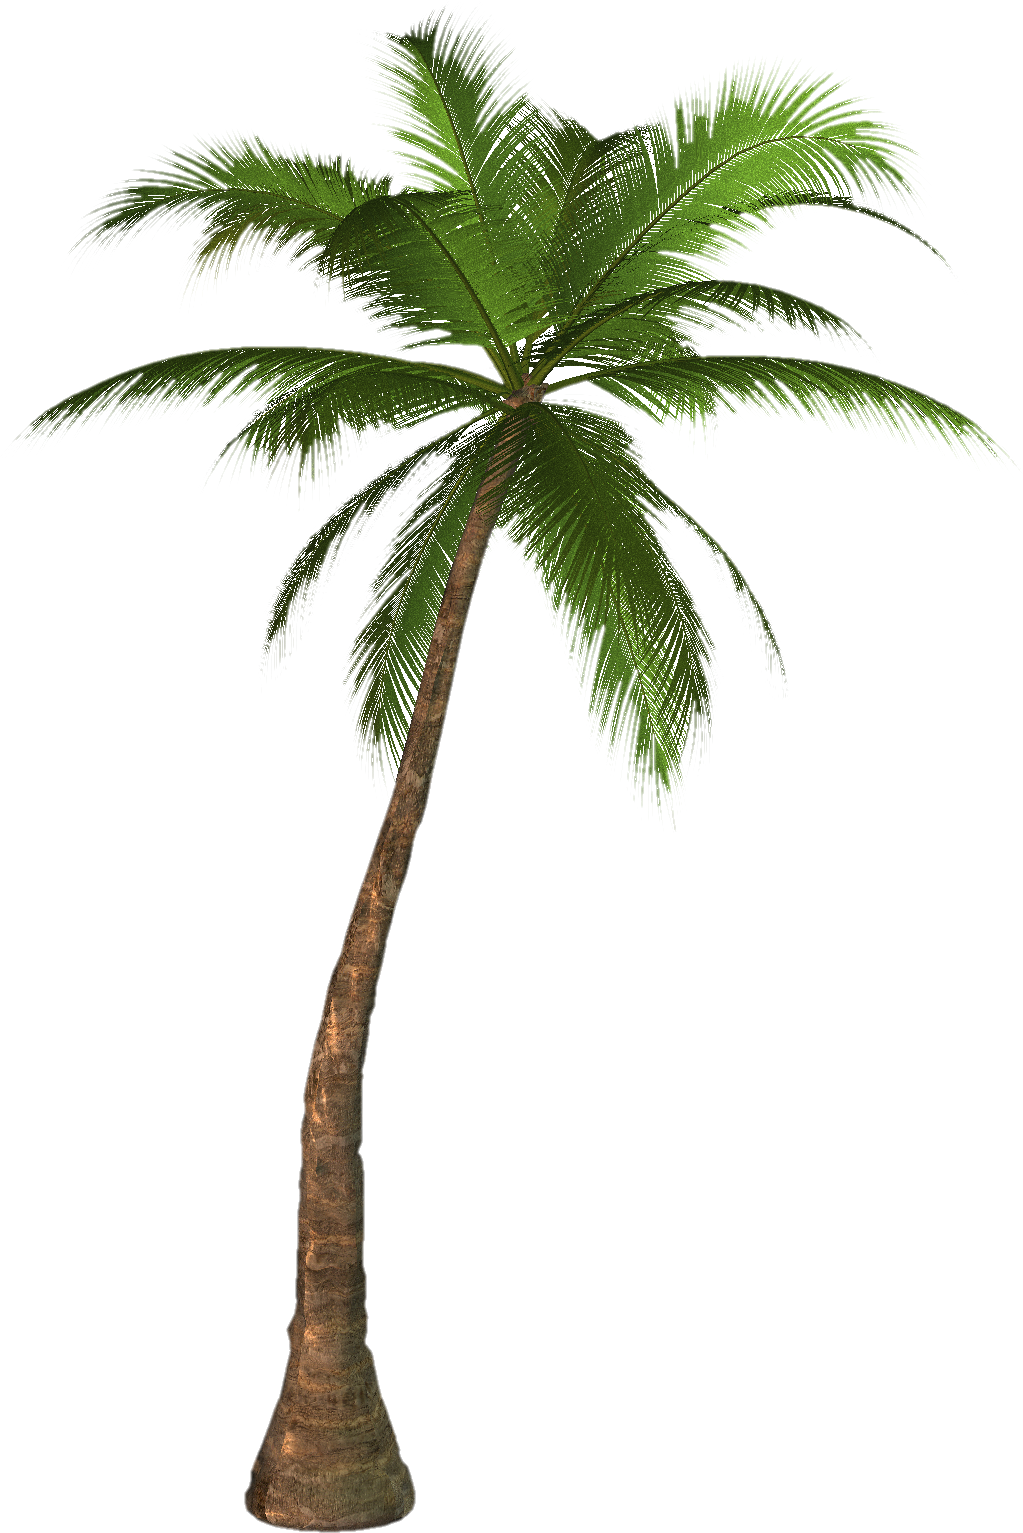 palm tree png: freehighresolutiongraphicsandclipart.blogspot.com/2010/09/blog-post...